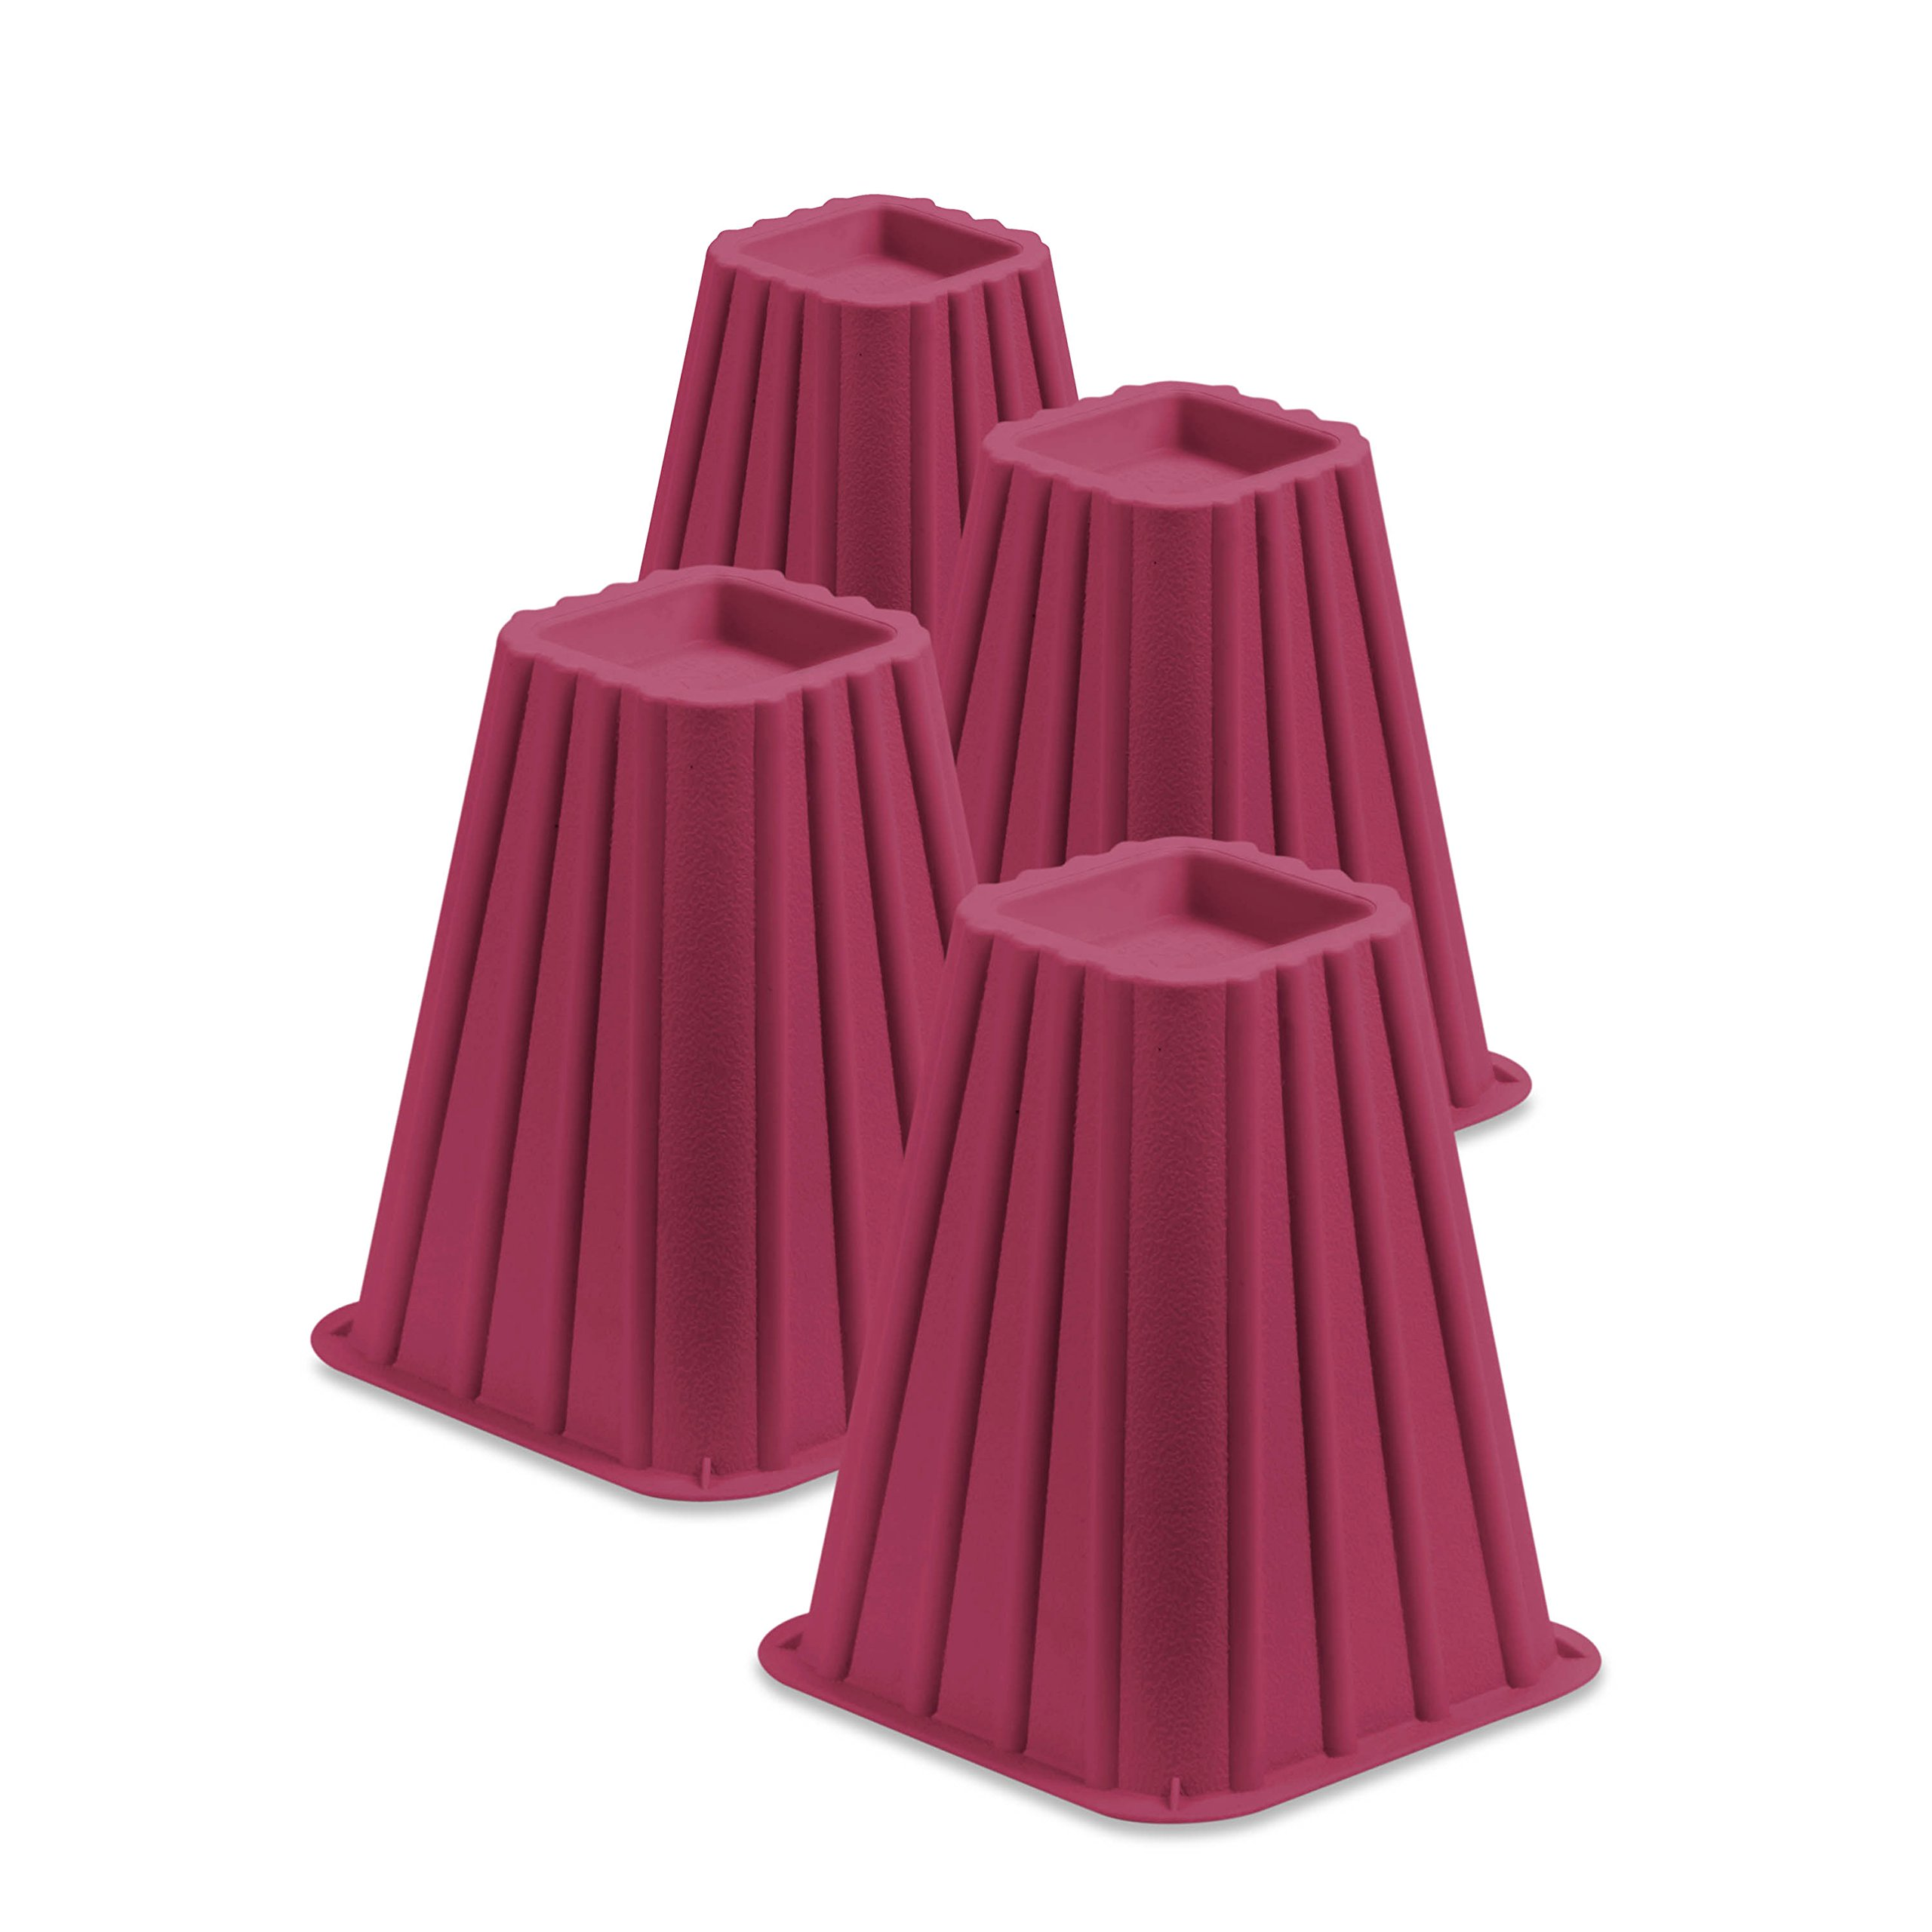 Honey-Can-Do STO-01877 Stackable Bed Risers, 4-Pack, Pink